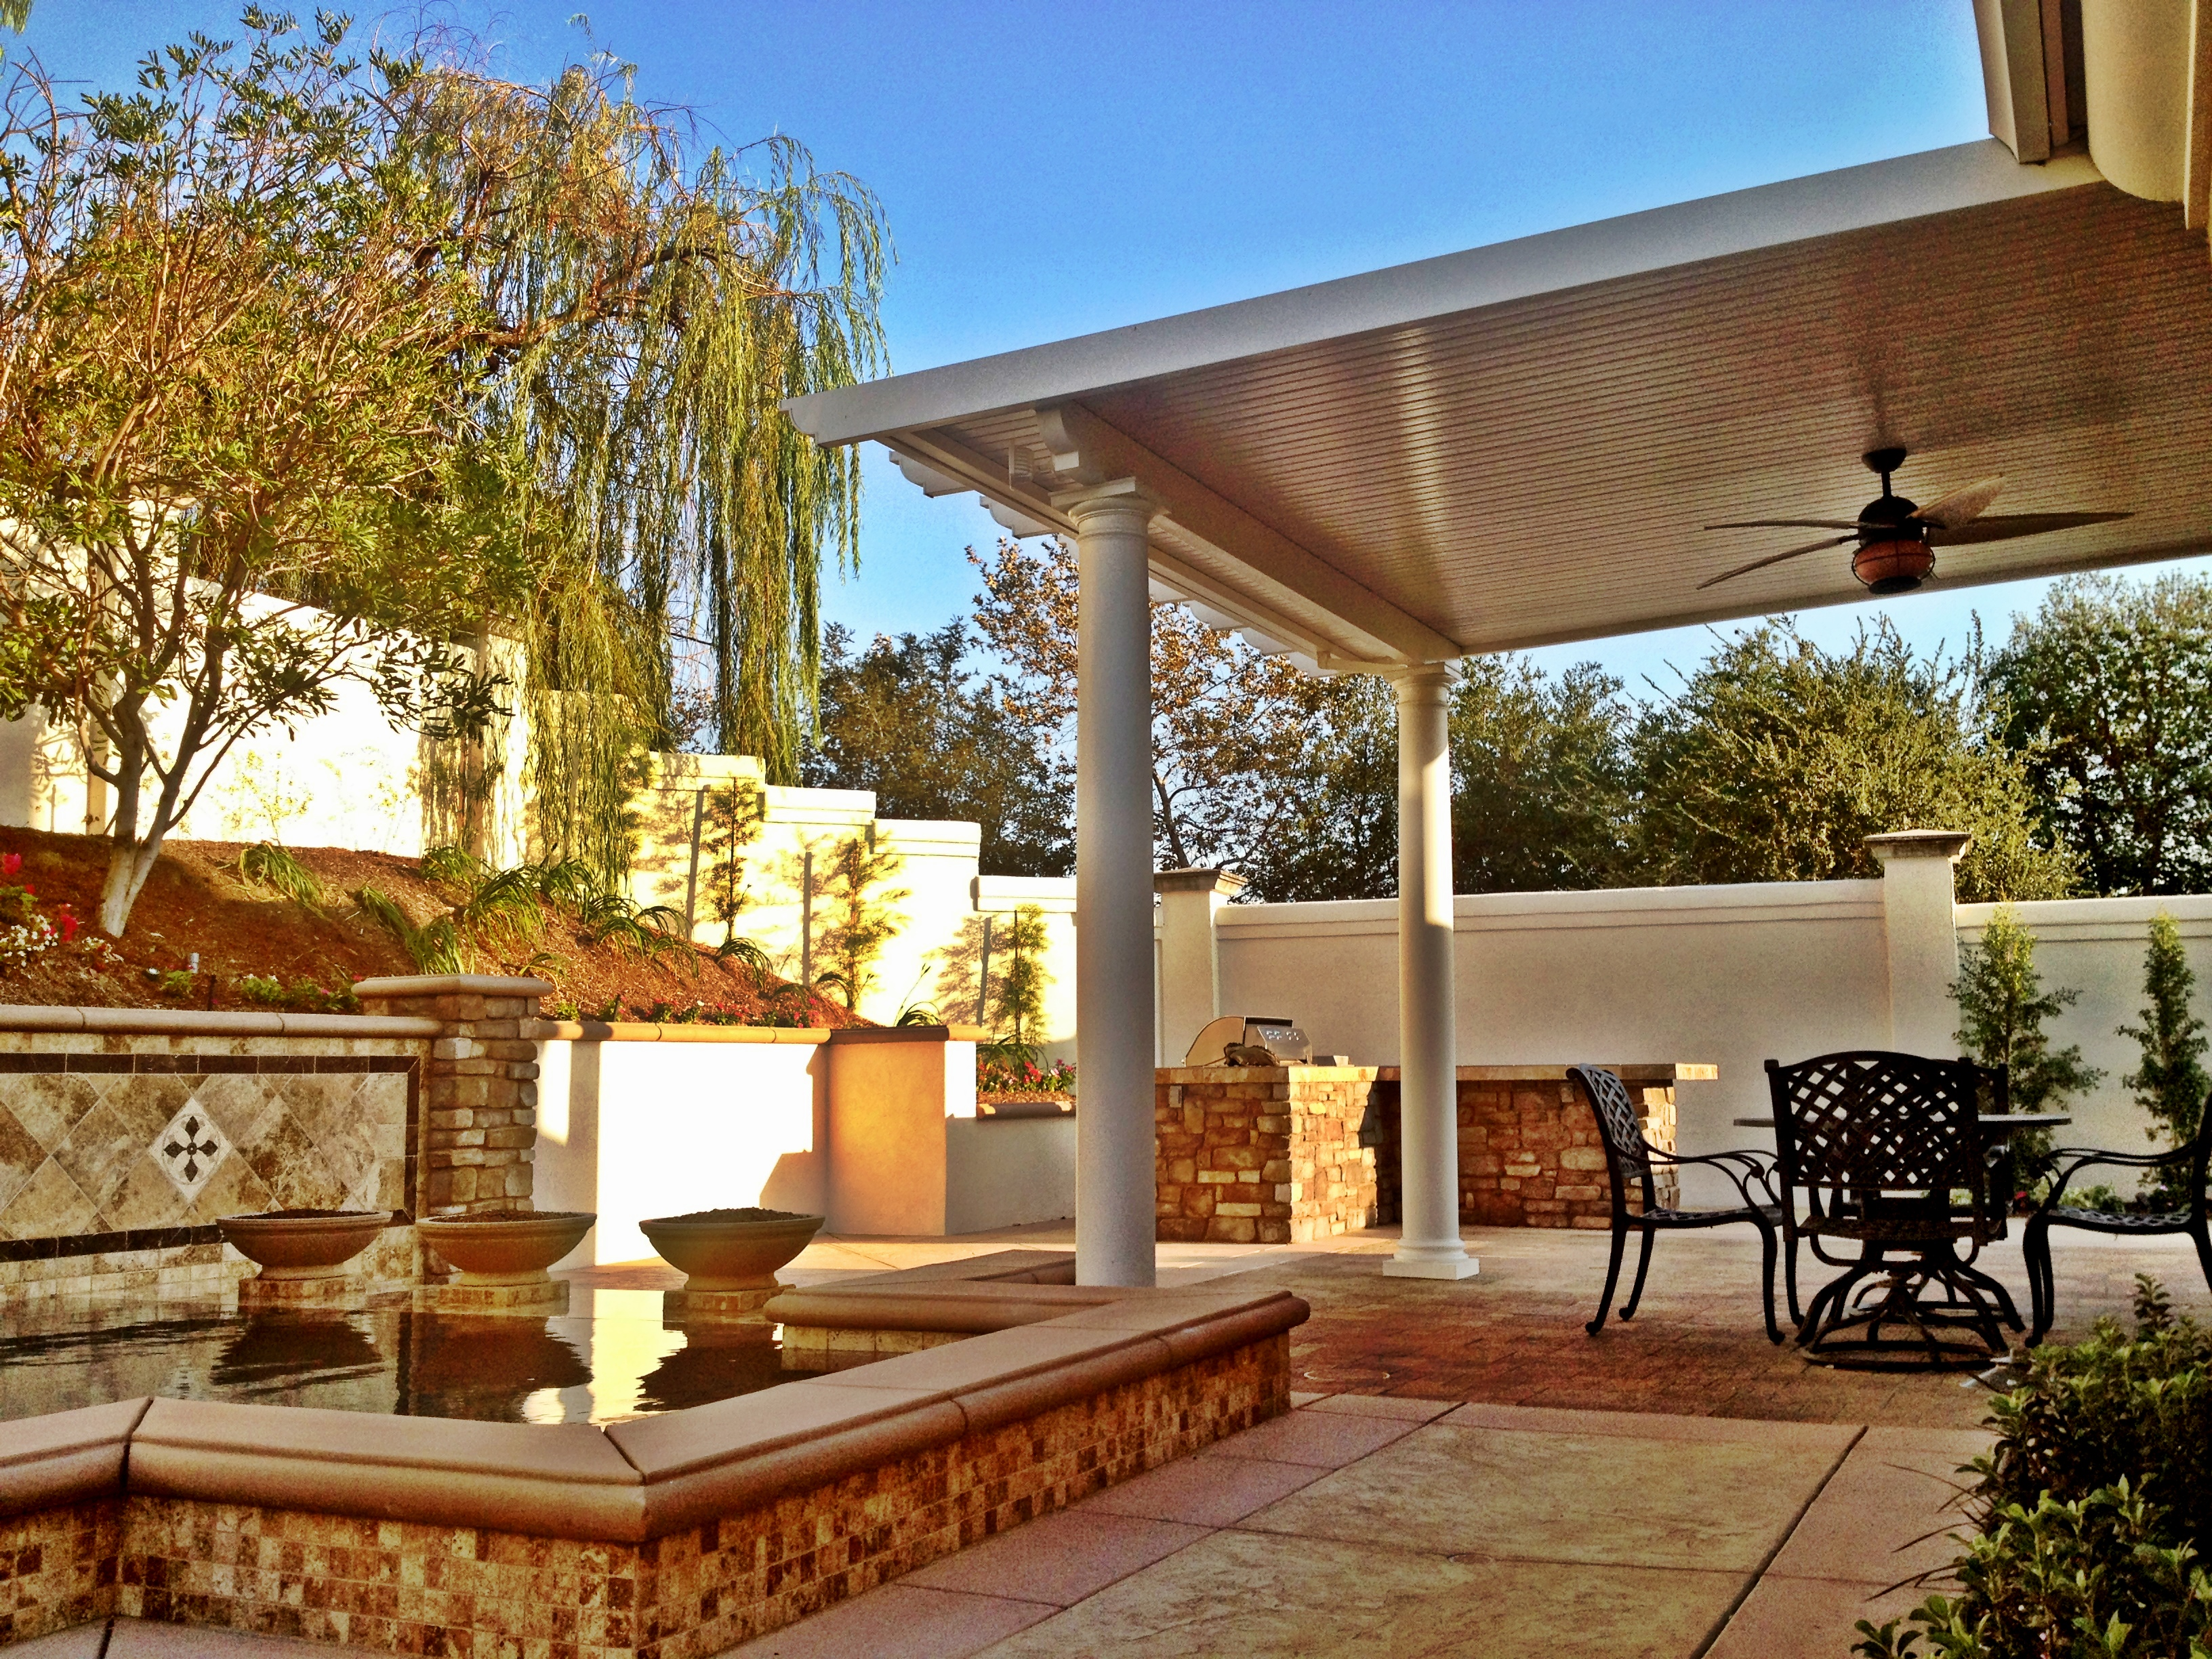 Diy alumawood patio cover kits shipped nationwide solutioingenieria Gallery